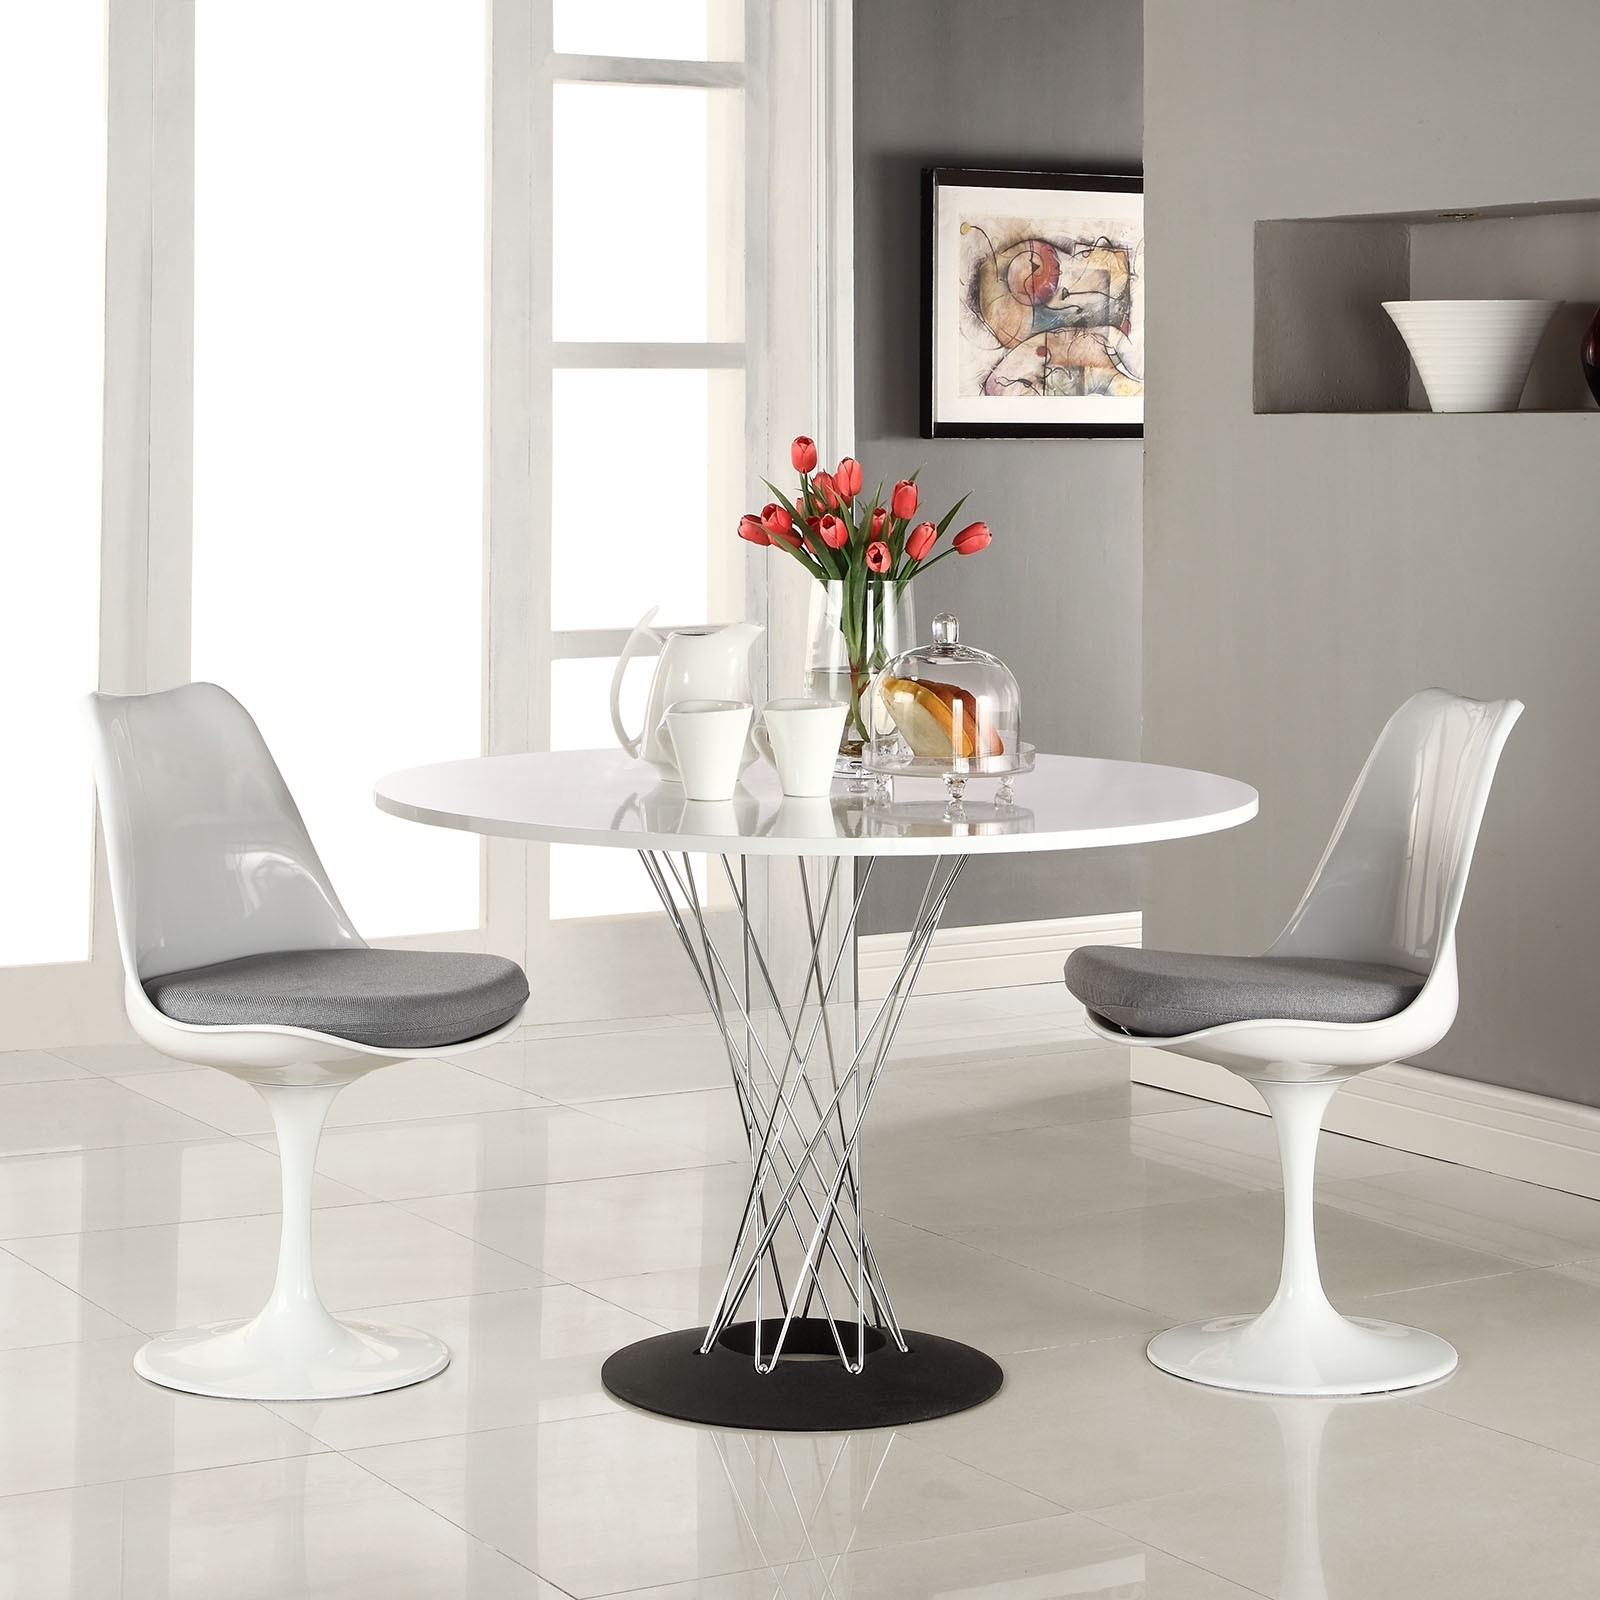 Acrylic Kitchen Table Fresh 15 White Round Table Design Ideas For Within 2017 Round Acrylic Dining Tables (View 3 of 25)